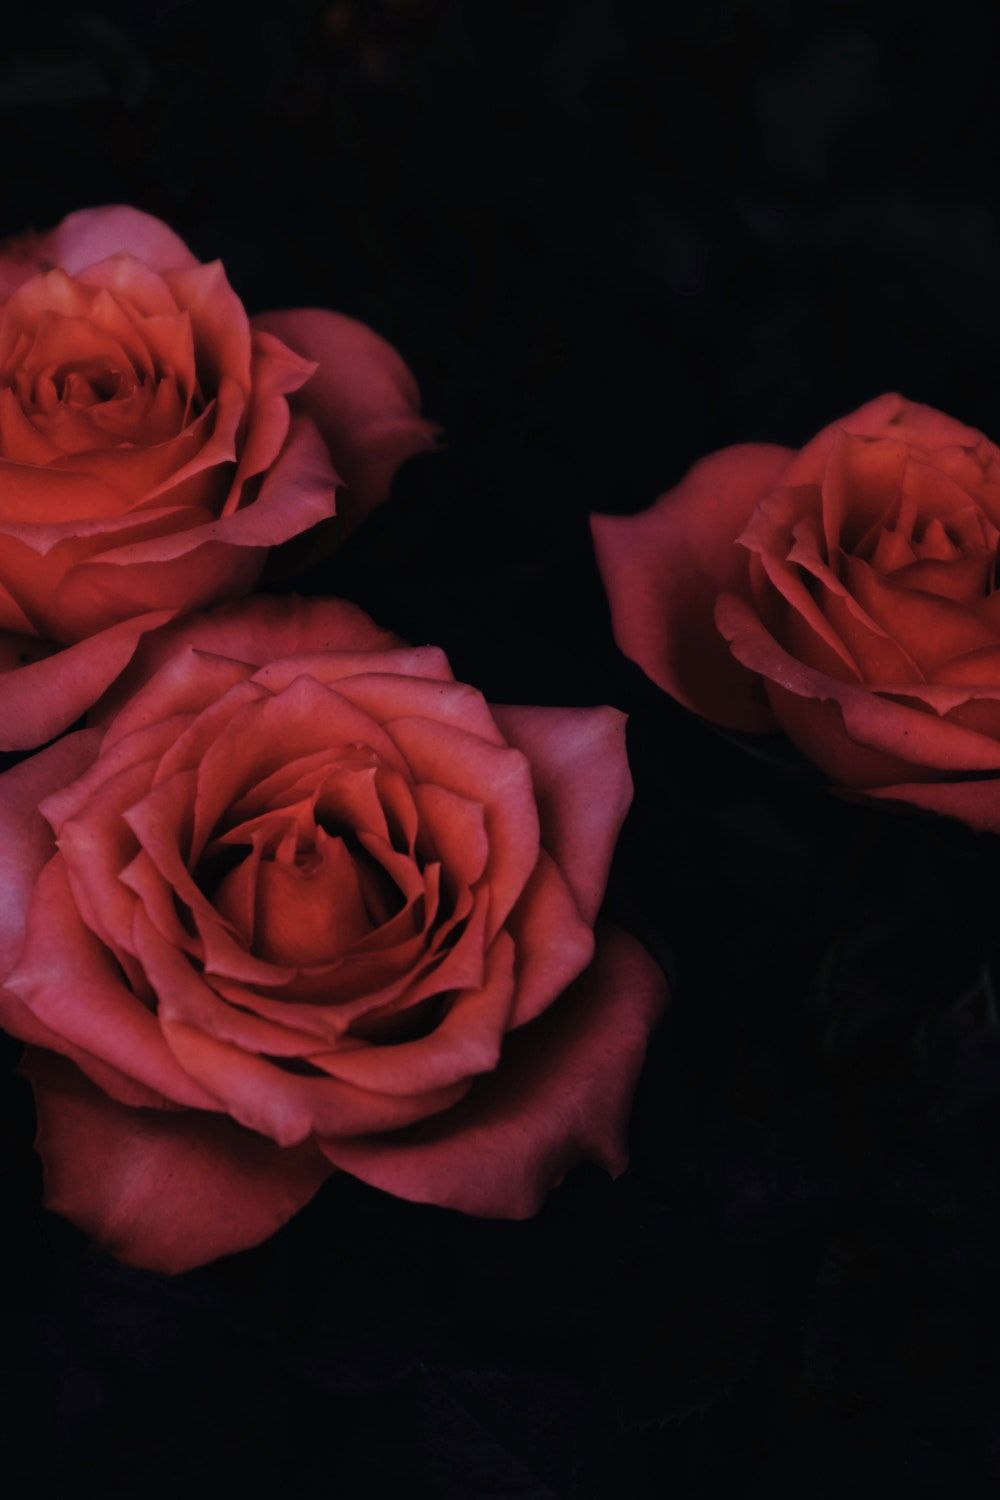 Chiaroscuro Photography Of Three Red Roses Wallpaper Iphone Roses Preppy Wallpaper Rose Wallpaper